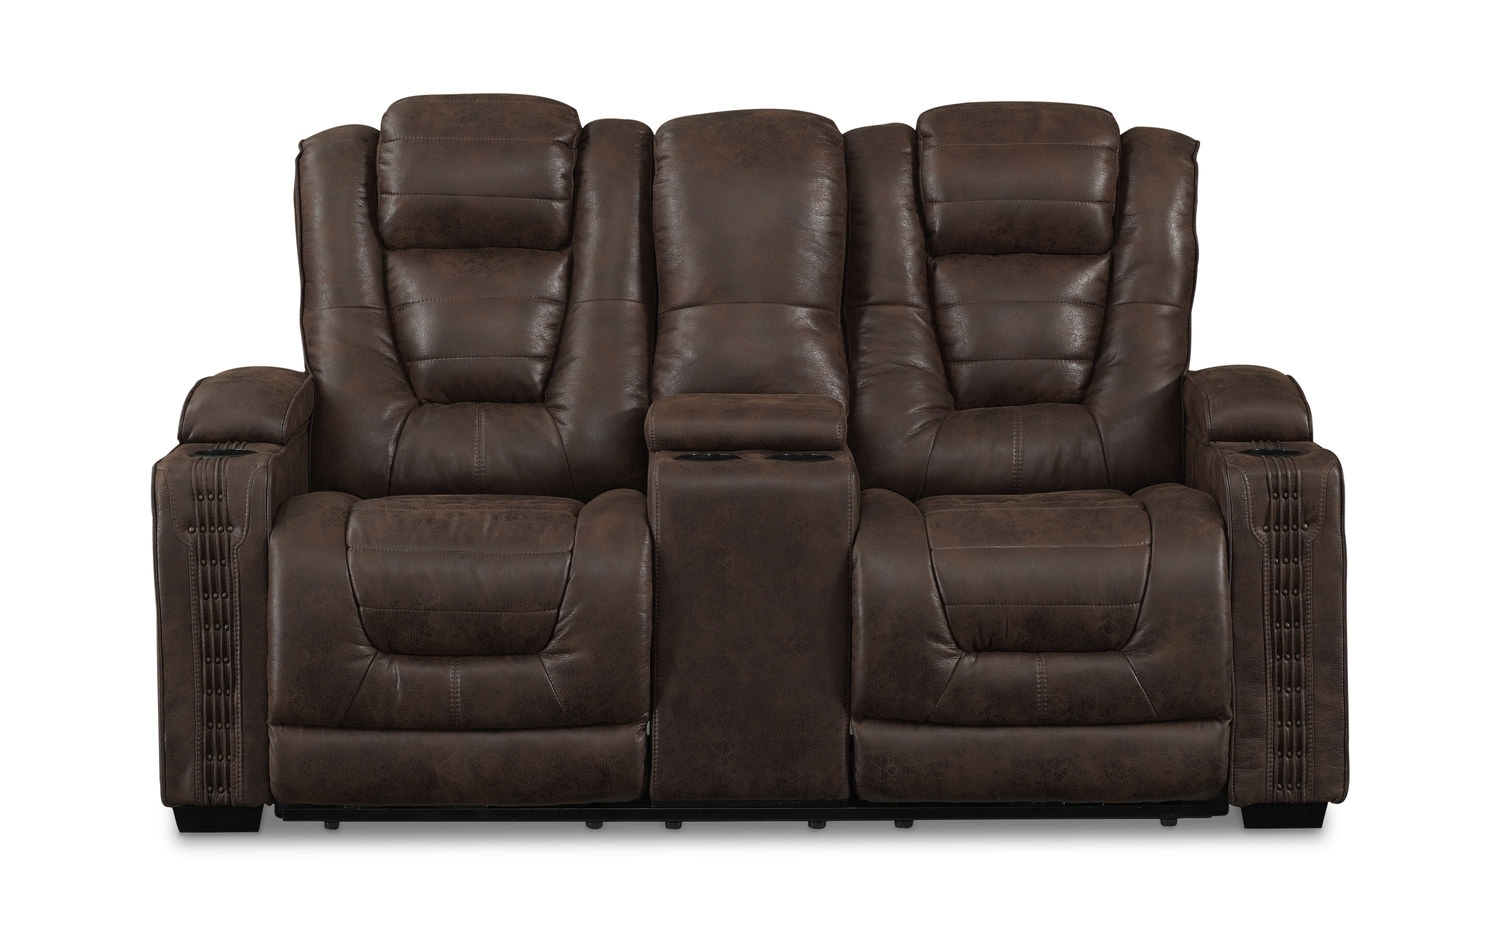 Morph Power Reclining Loveseat With Console | Hom Furniture For Denali Light Grey 6 Piece Reclining Sectionals With 2 Power Headrests (View 10 of 25)